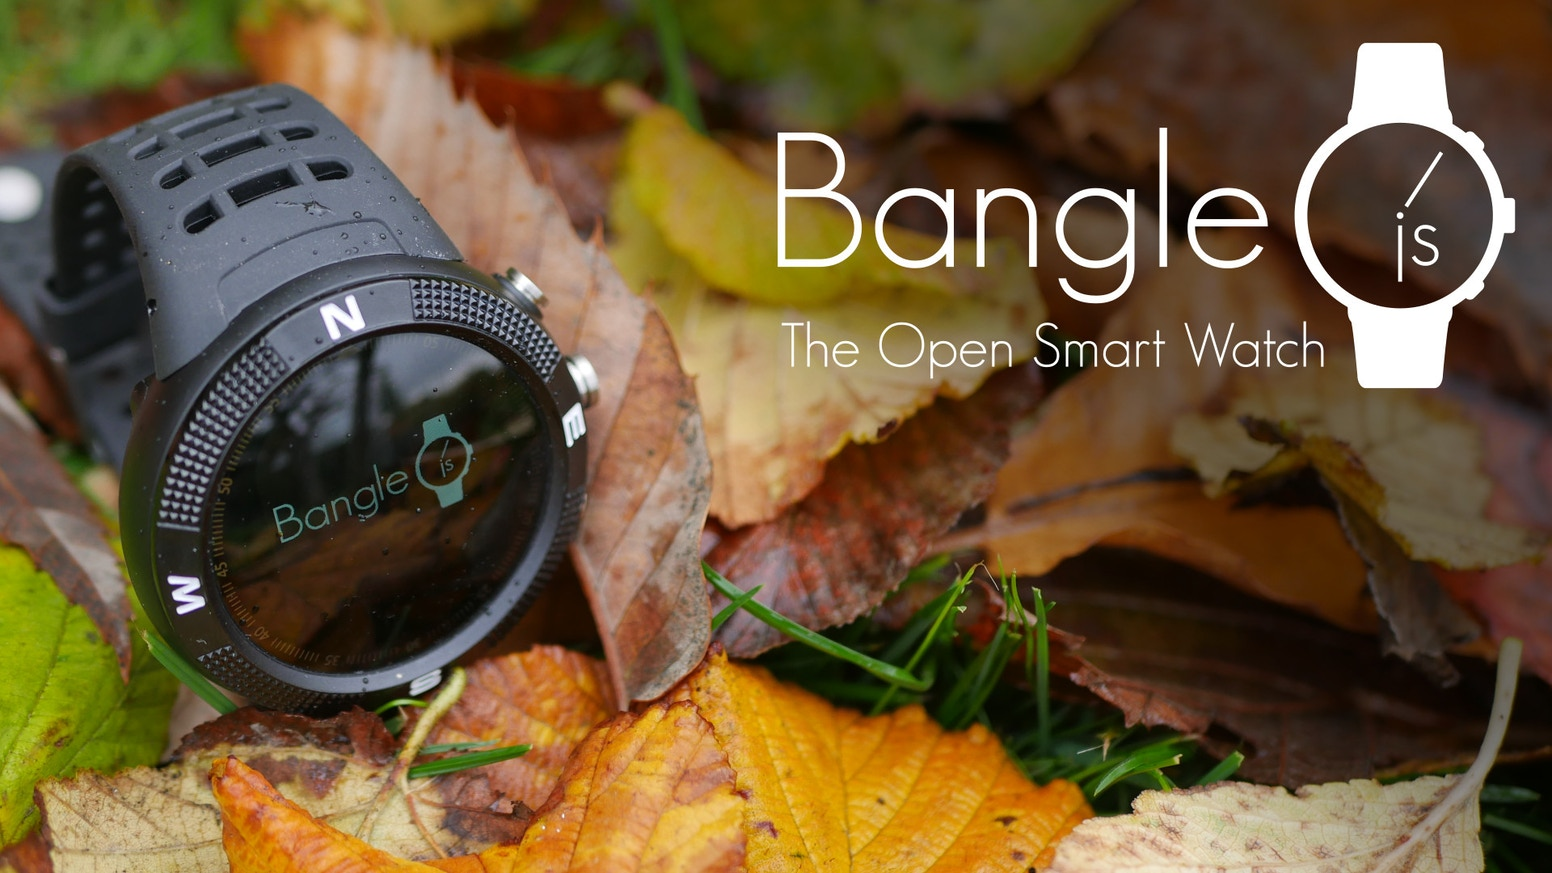 An open source, AI-enabled smart watch that can be easily customised.The KickStarter has now ended, and Bangle.js rewards have shipped. If you missed the KickStarter and still want one you can now get one below: